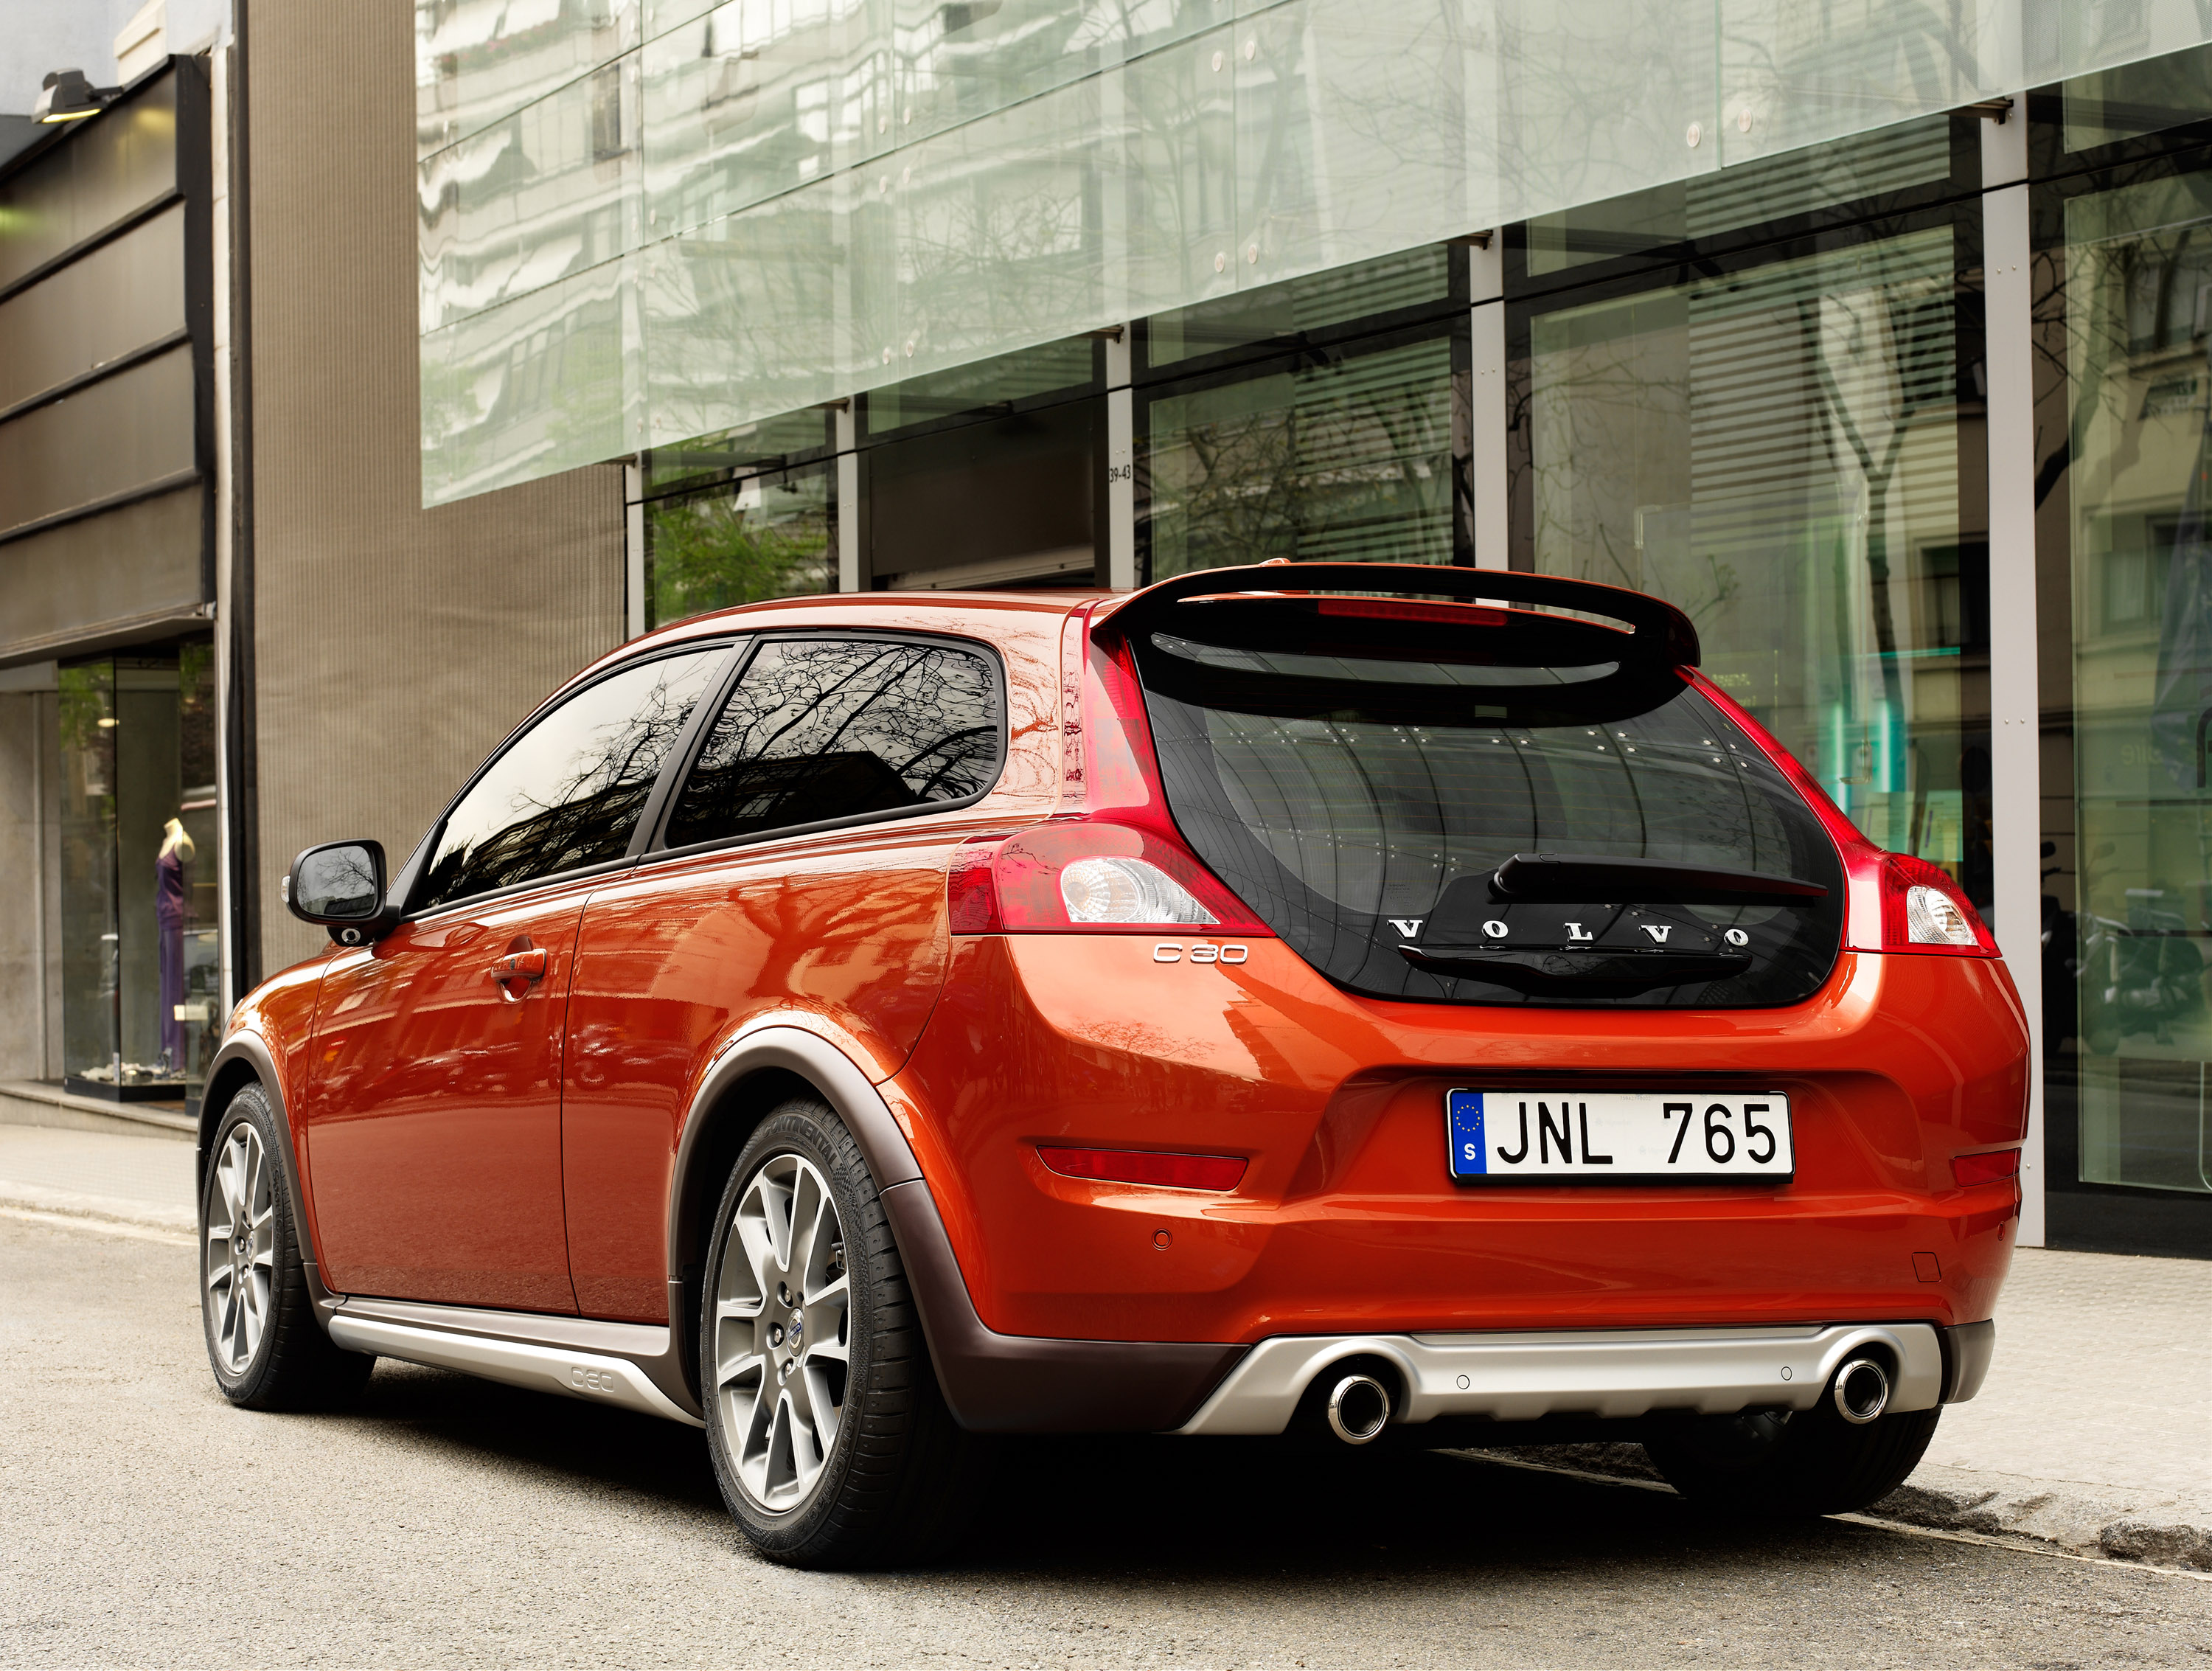 Volvo Announced the prices on the new C30 and C70